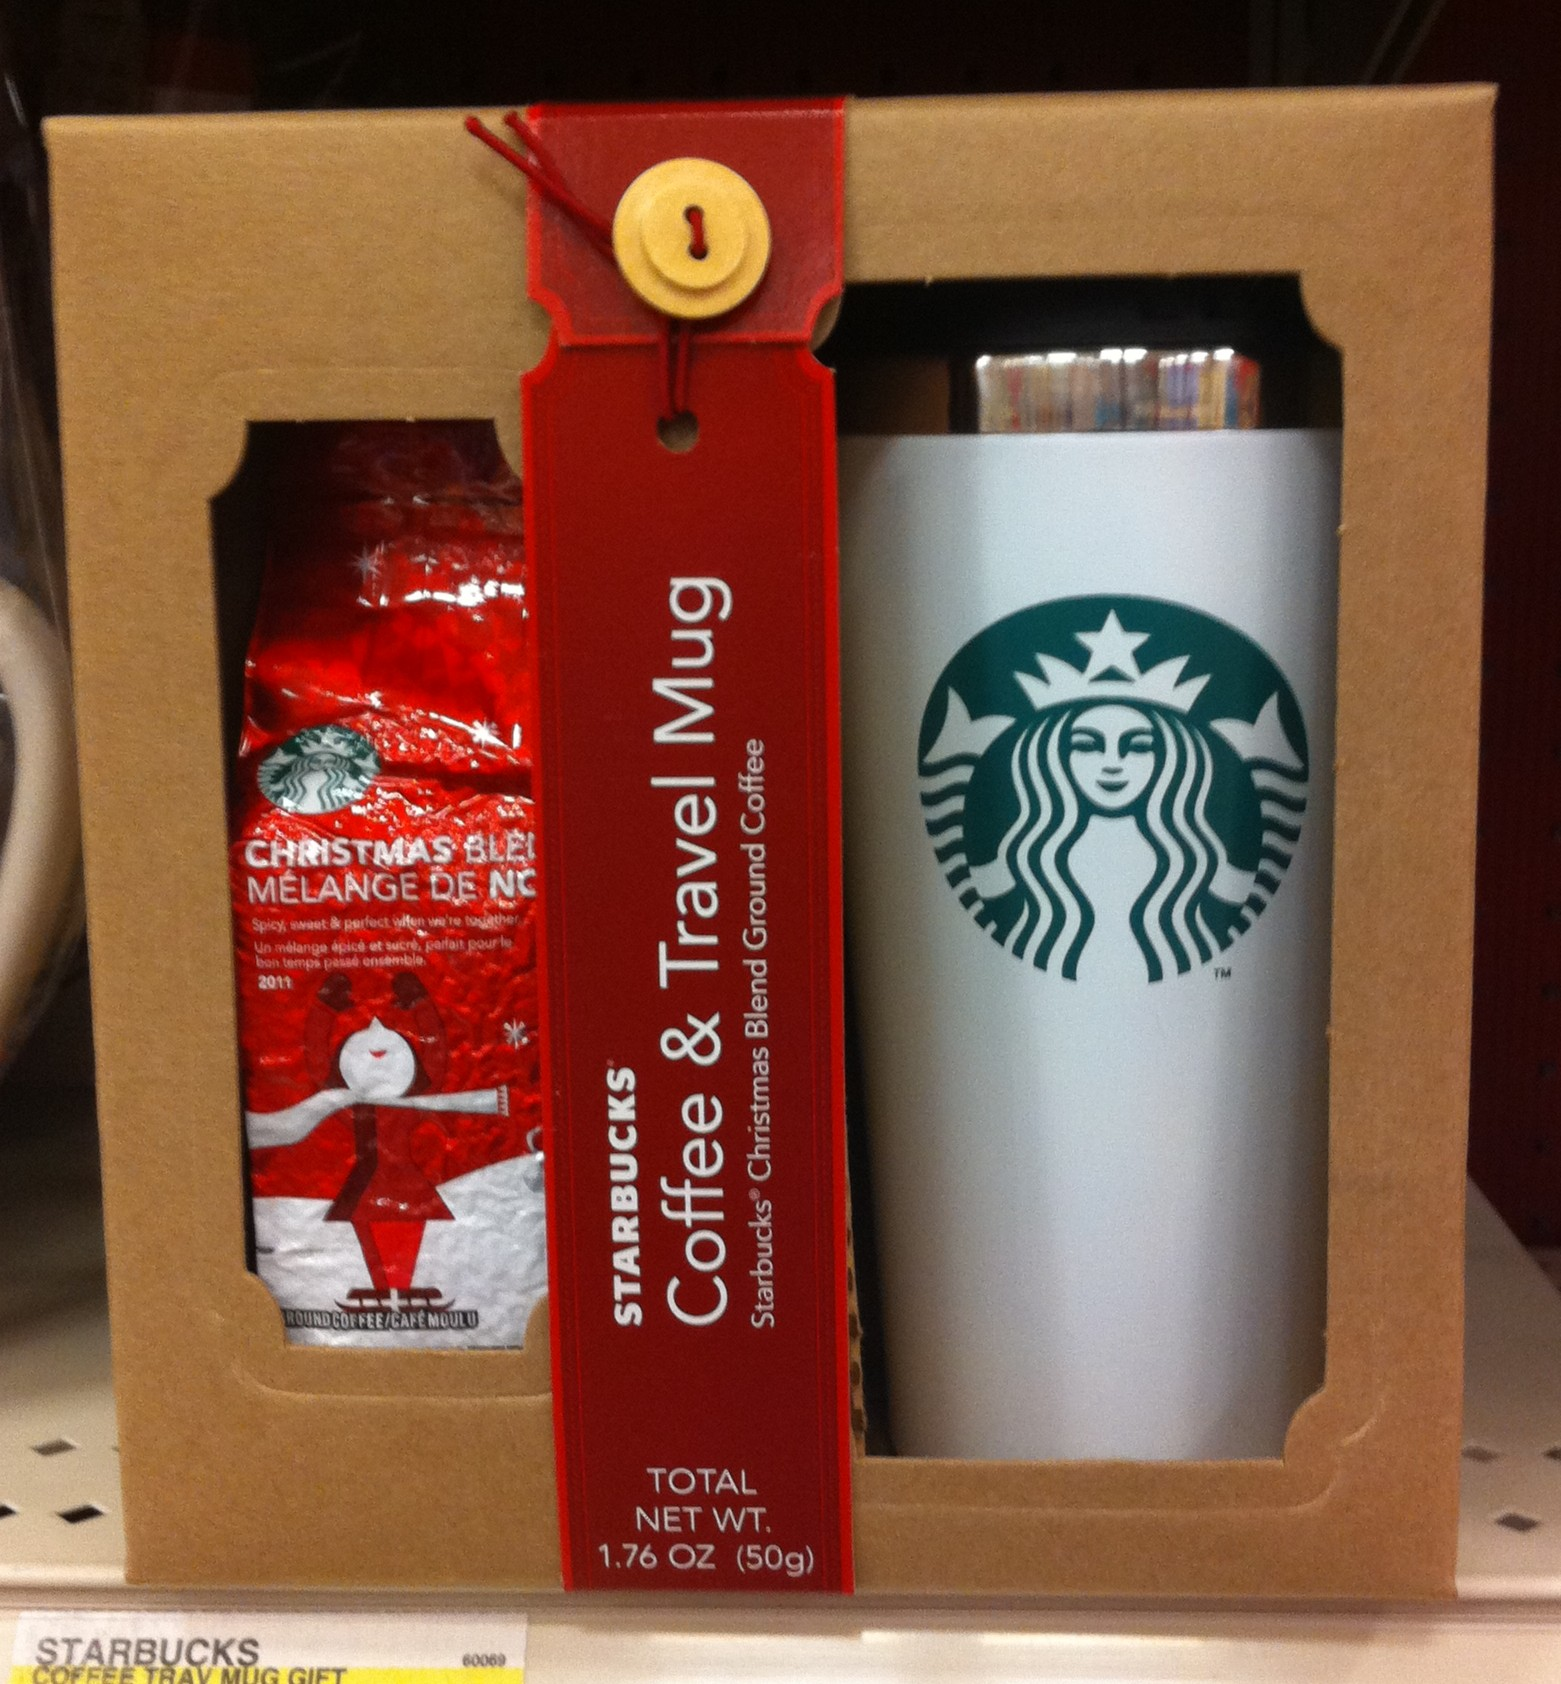 starbucks promotions mug gift set theodmgroup blog